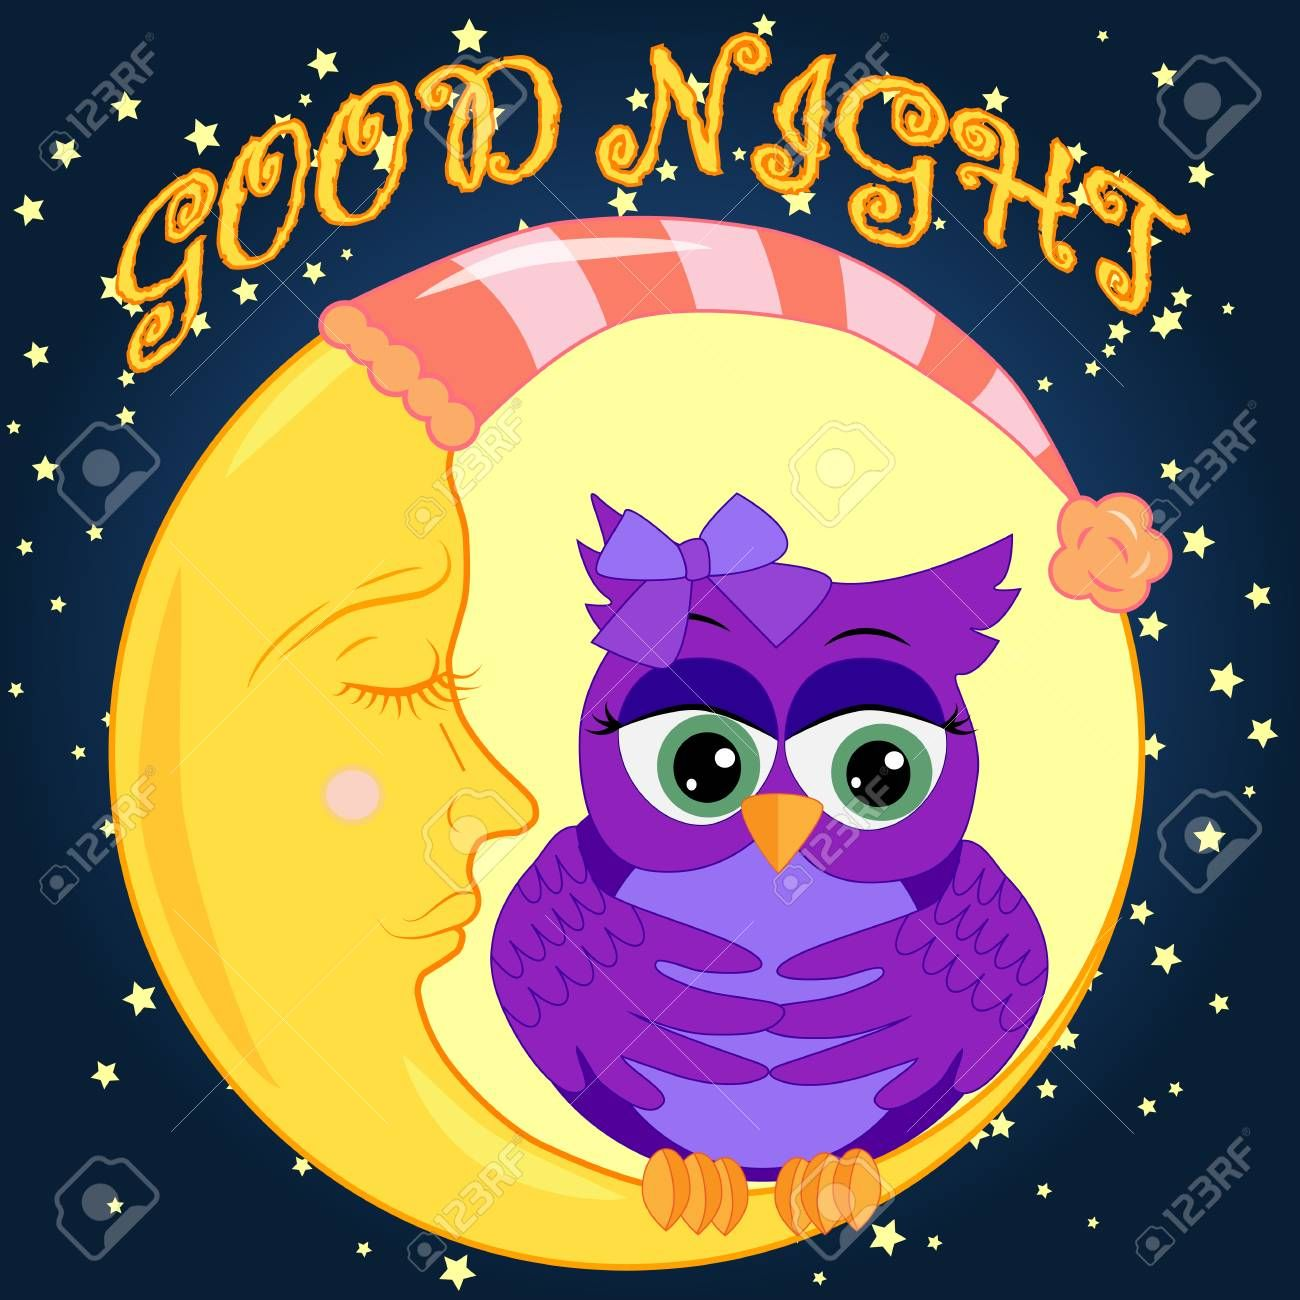 Good night card with sleeping moon and cute owl. Cute cartoon owl coquettish sitting dormant on the crescent against the night sky with stars , #SPONSORED, #moon, #cute, #owl, #sleeping, #Good